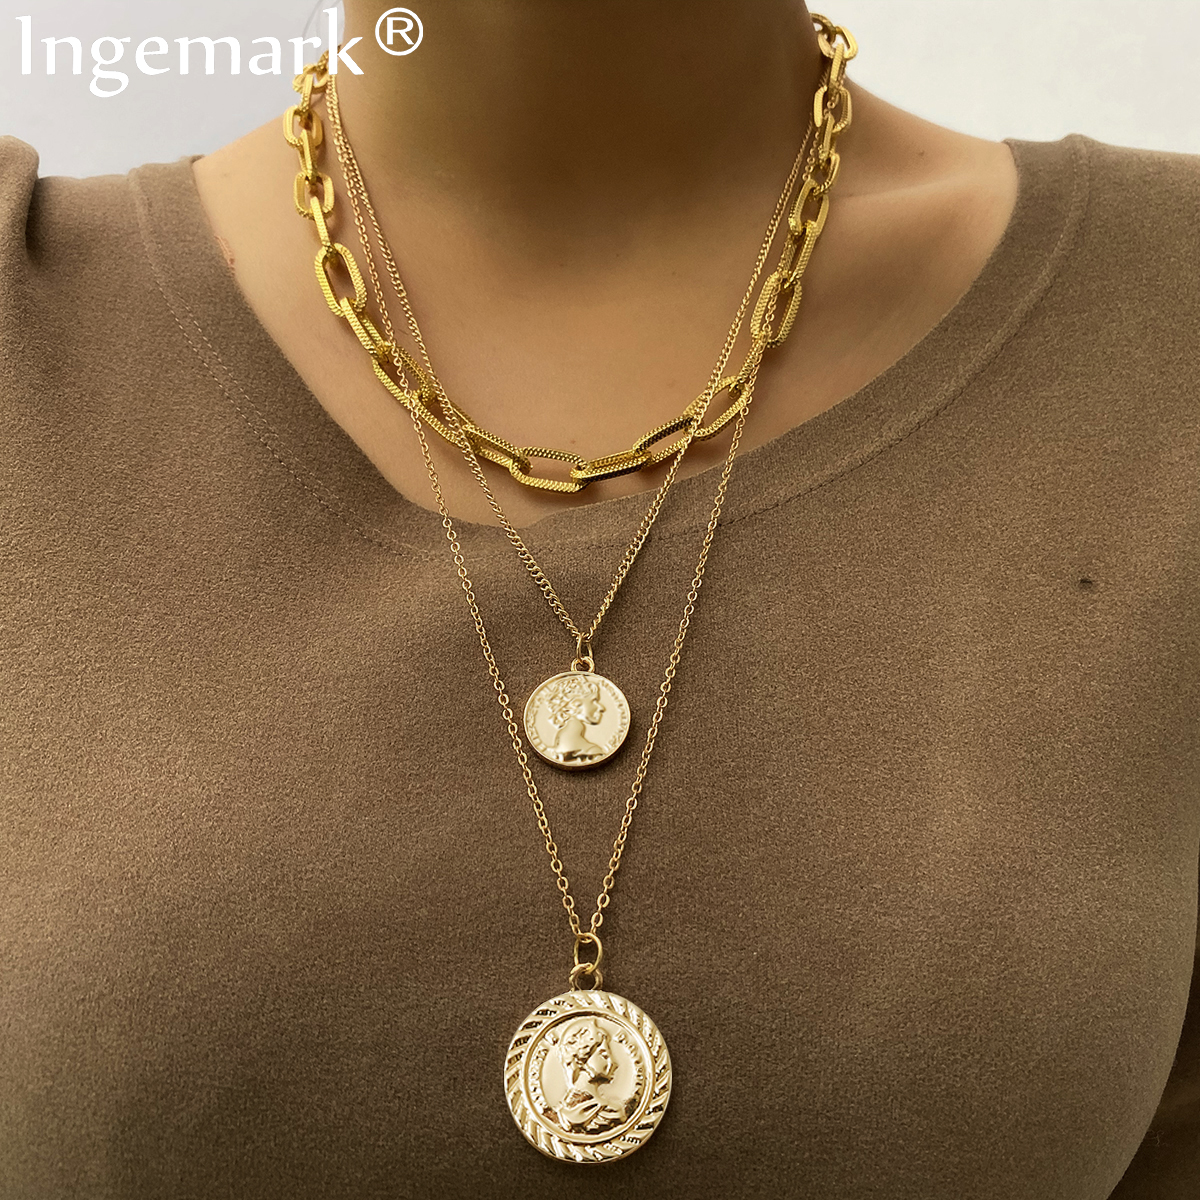 Bohemian Big Coin Pendant Choker Necklace Colar Statement Vintage Multi Layered Angel Lock Chain Necklace Women New Year Jewelry